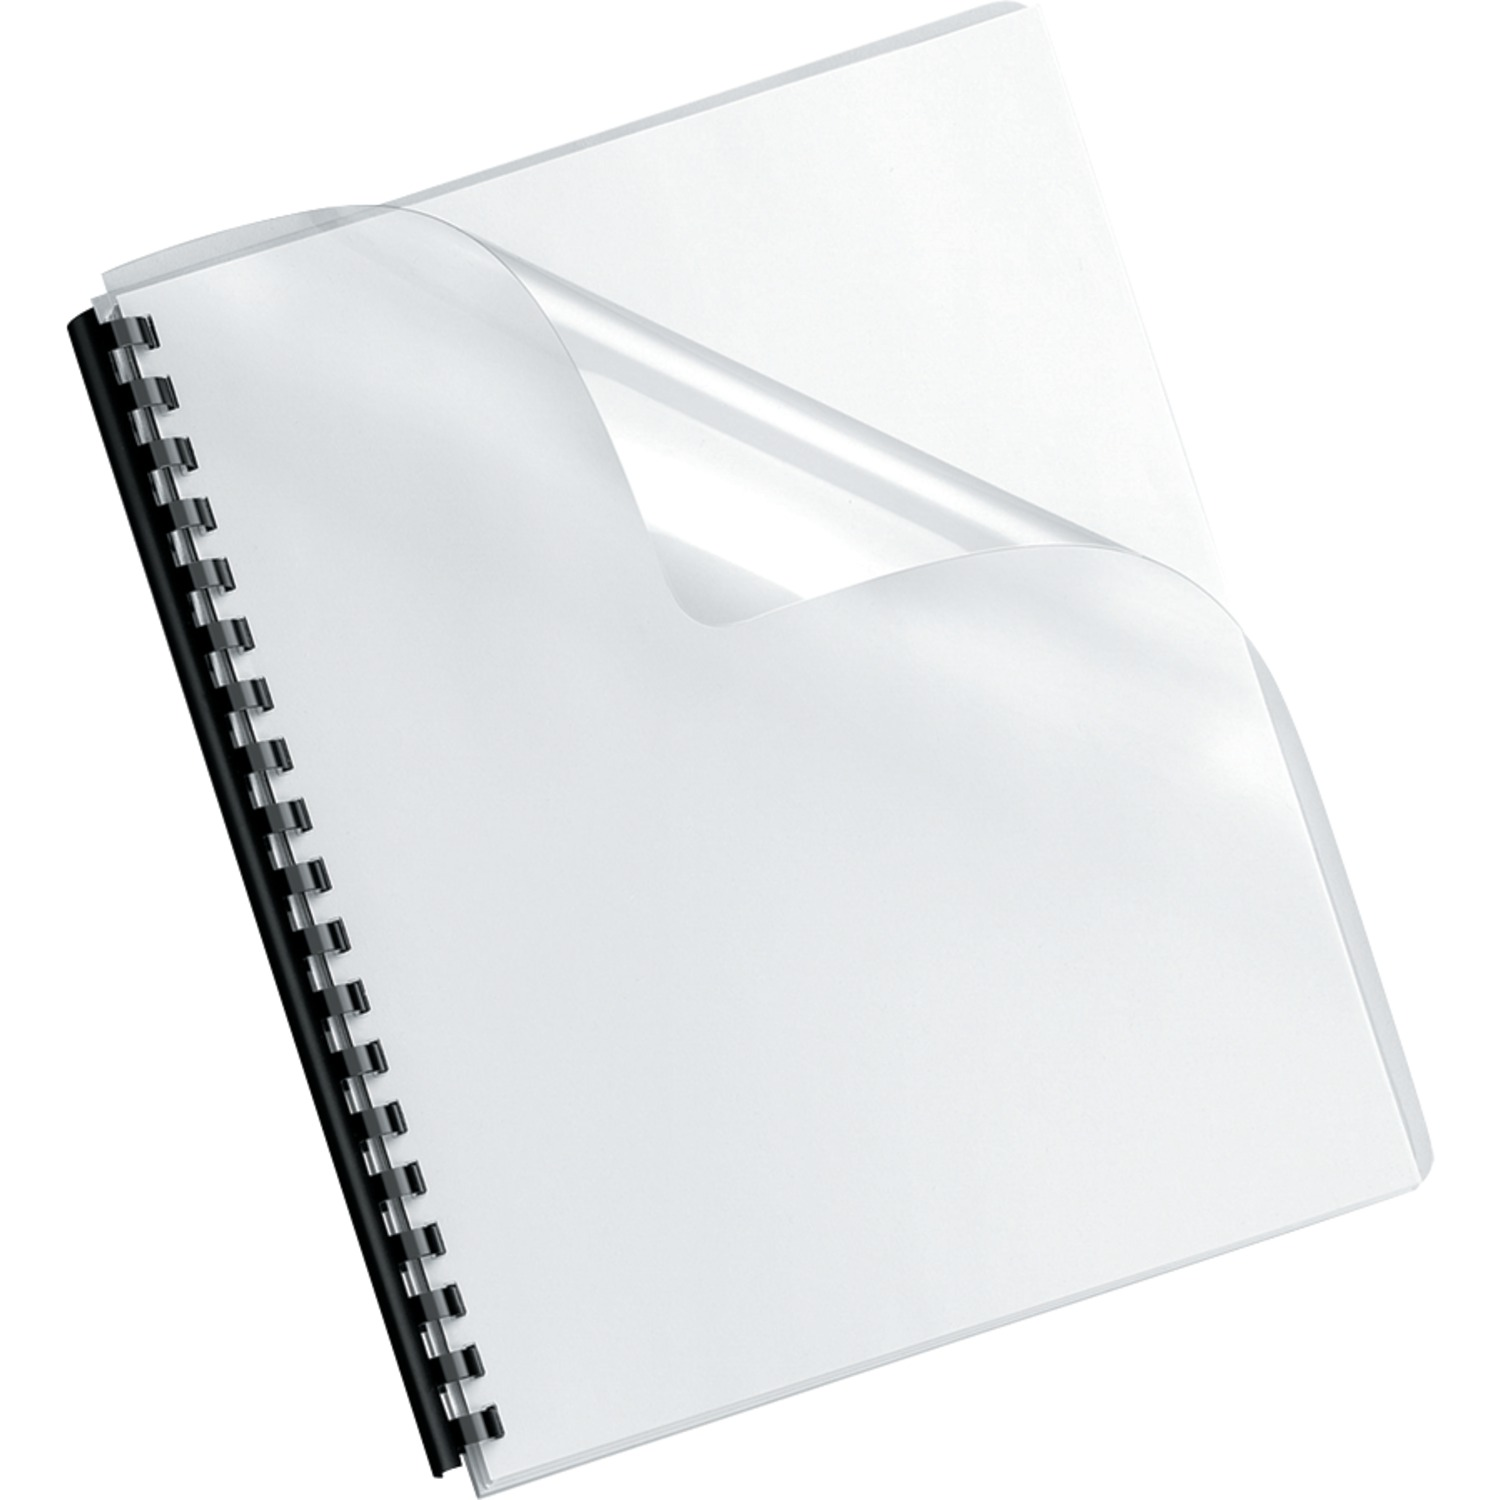 Fellowes 52311 Crystals Transparent PVC Binding Cover, Oversized, 100pk